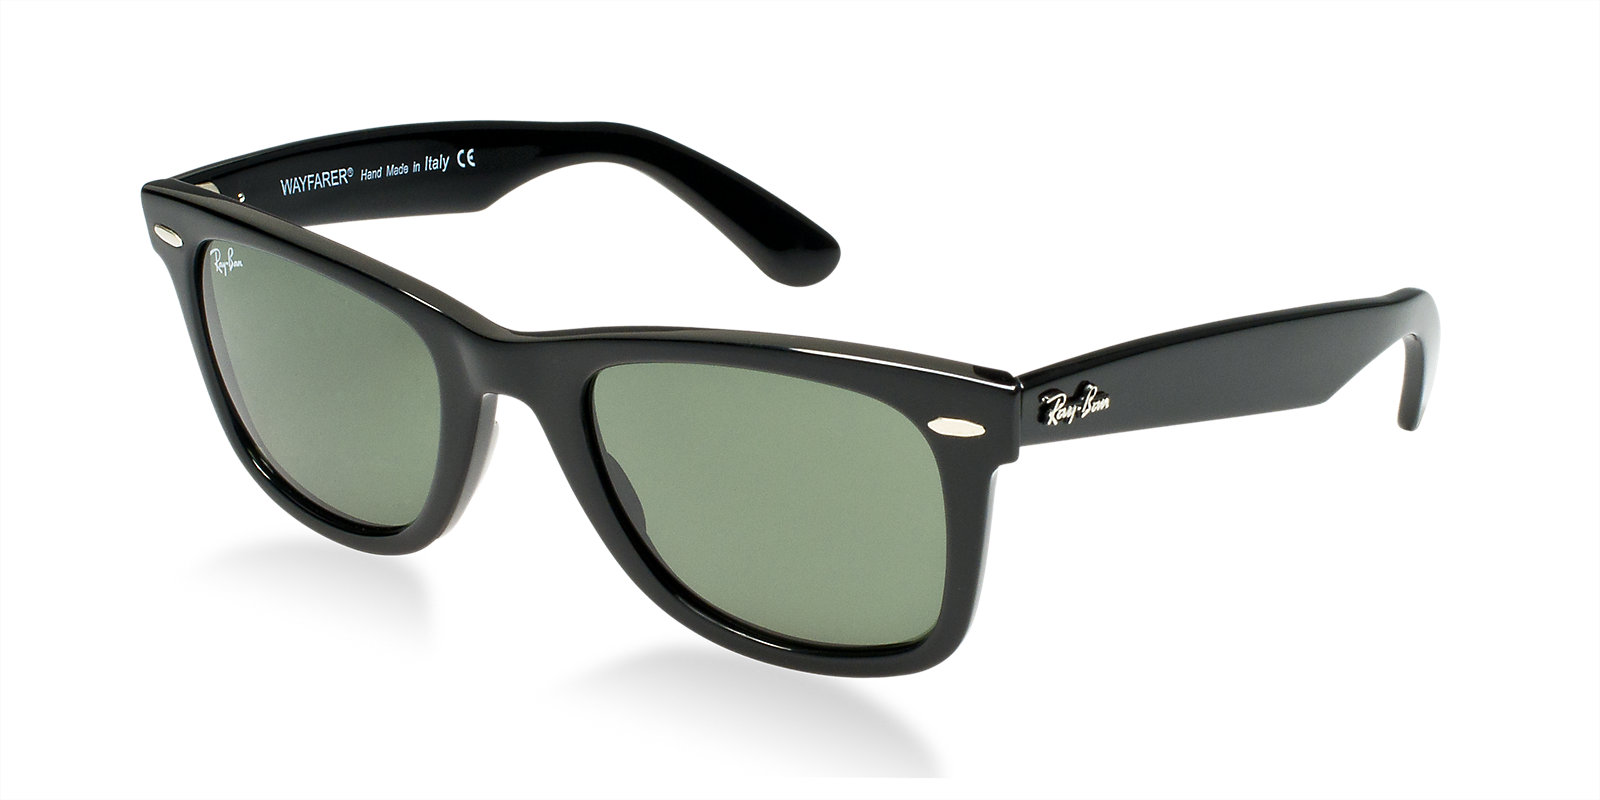 f4dca494e6fad9 rb2140 901 black angle. Previous  Next. Previous  Next. RAY-BAN RB2140 901  BLACK CLASSIC WAYFARER SUNGLASSES